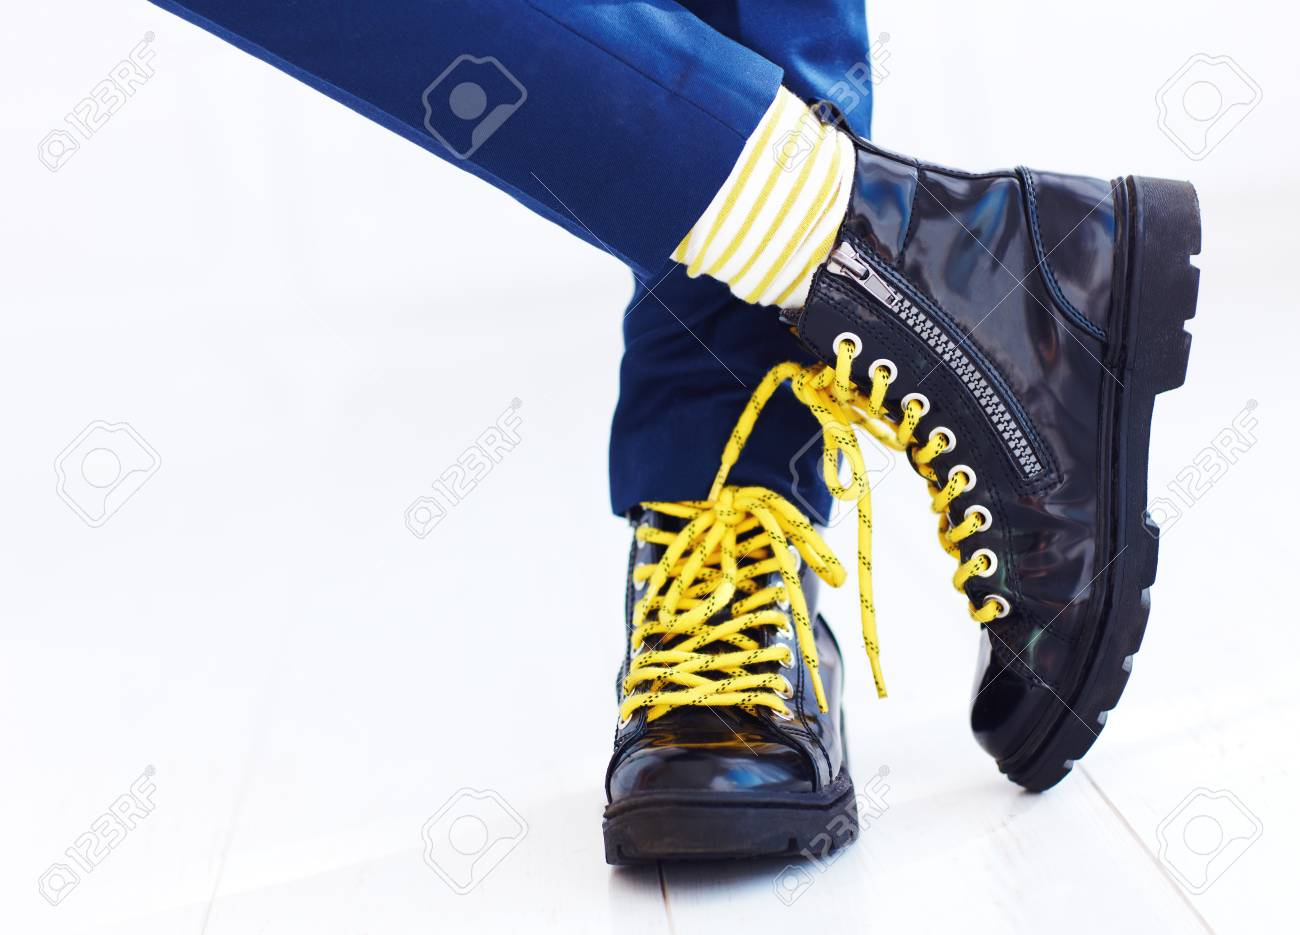 stylish look of patent leather ankle boots with yellow shoelaces..